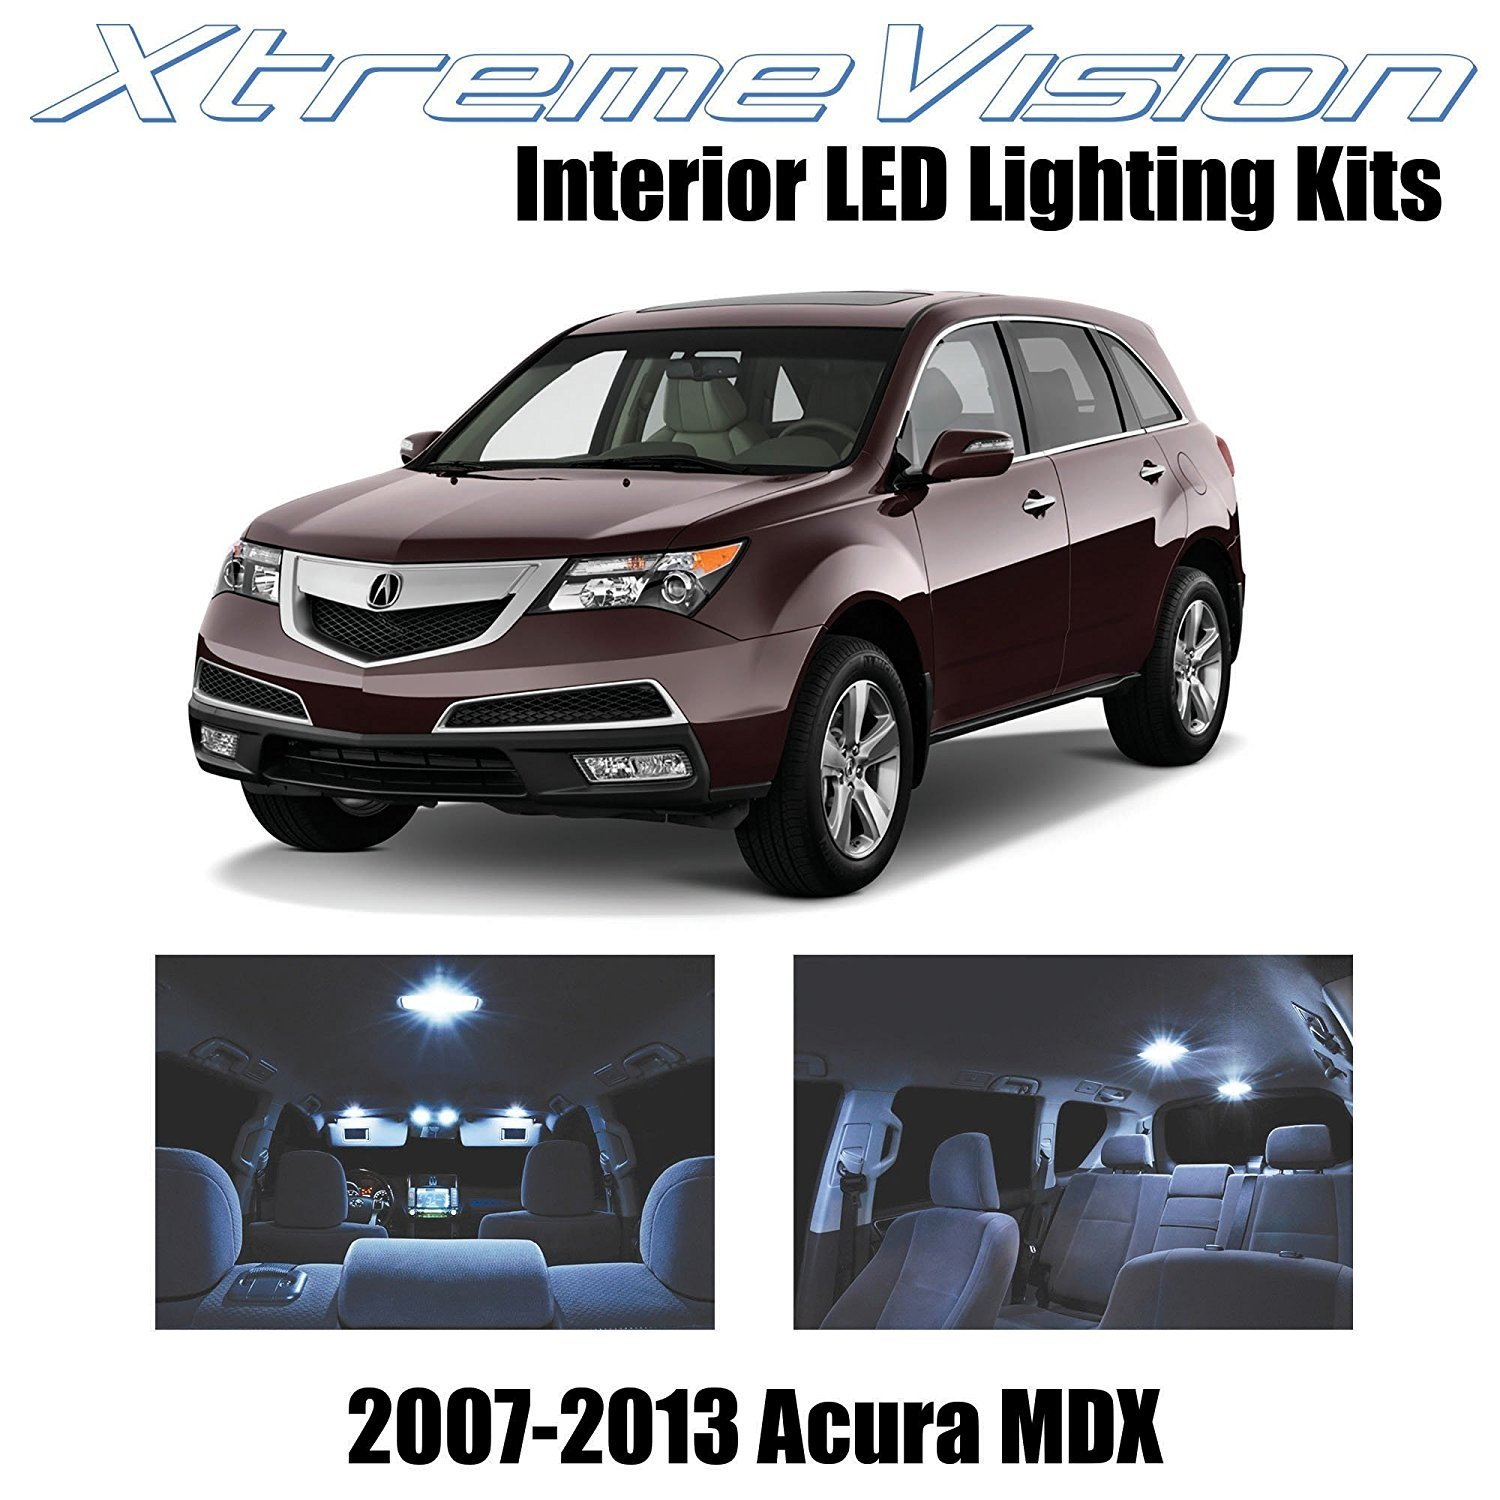 Xtremevision Led For Acura Mdx 2007 2013 13 Pieces Cool White Premium Interior Led Kit Package Installation Tool Walmart Com Walmart Com